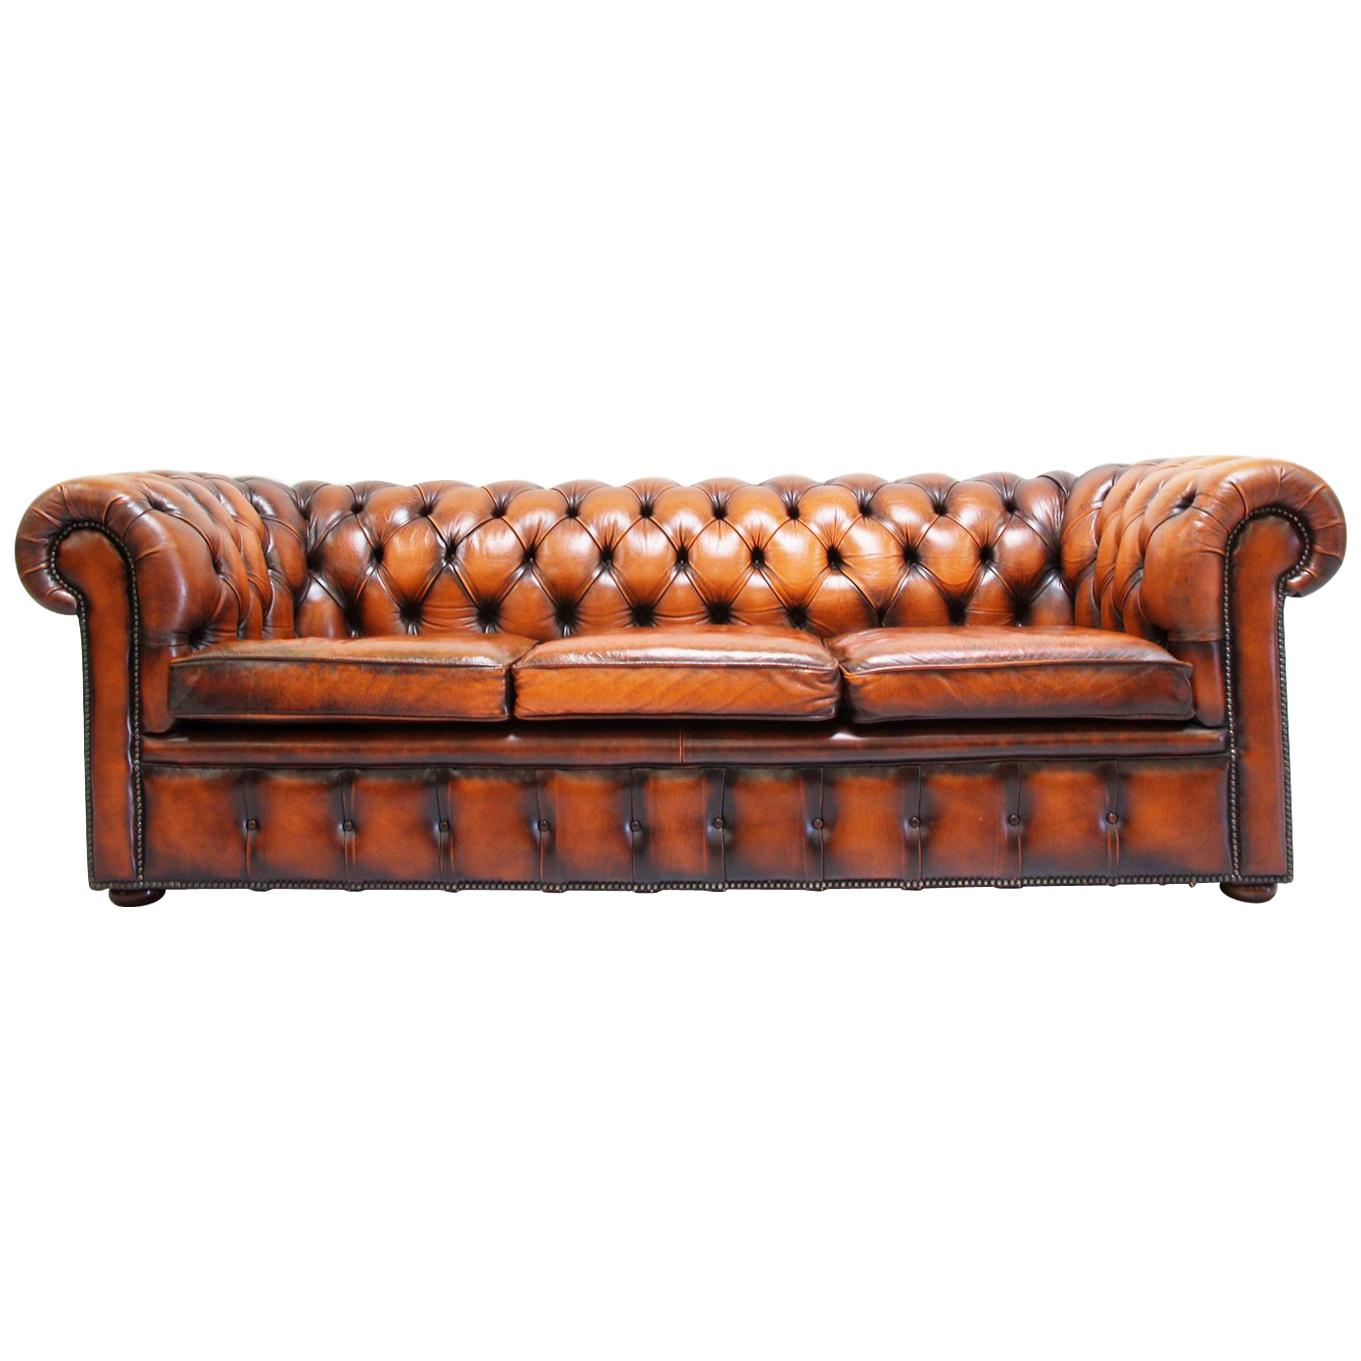 Polster Couch Chesterfield Sofa Leder Antik Vintage Couch English Chippendale